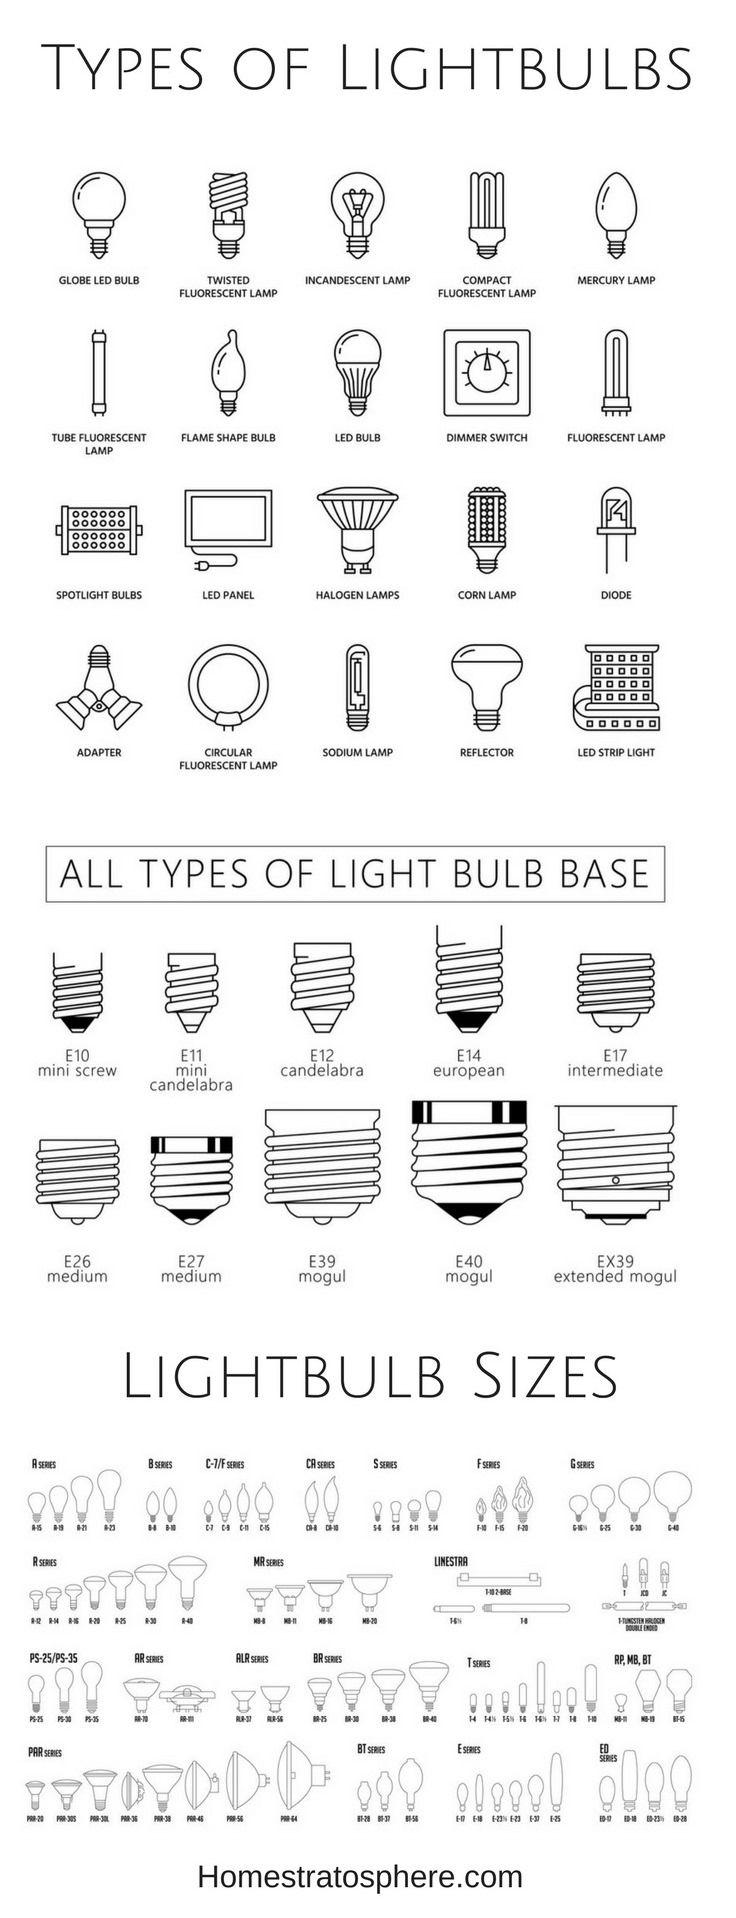 24 Different Types Of Table Lamps 2020 Buying Guide Lamp